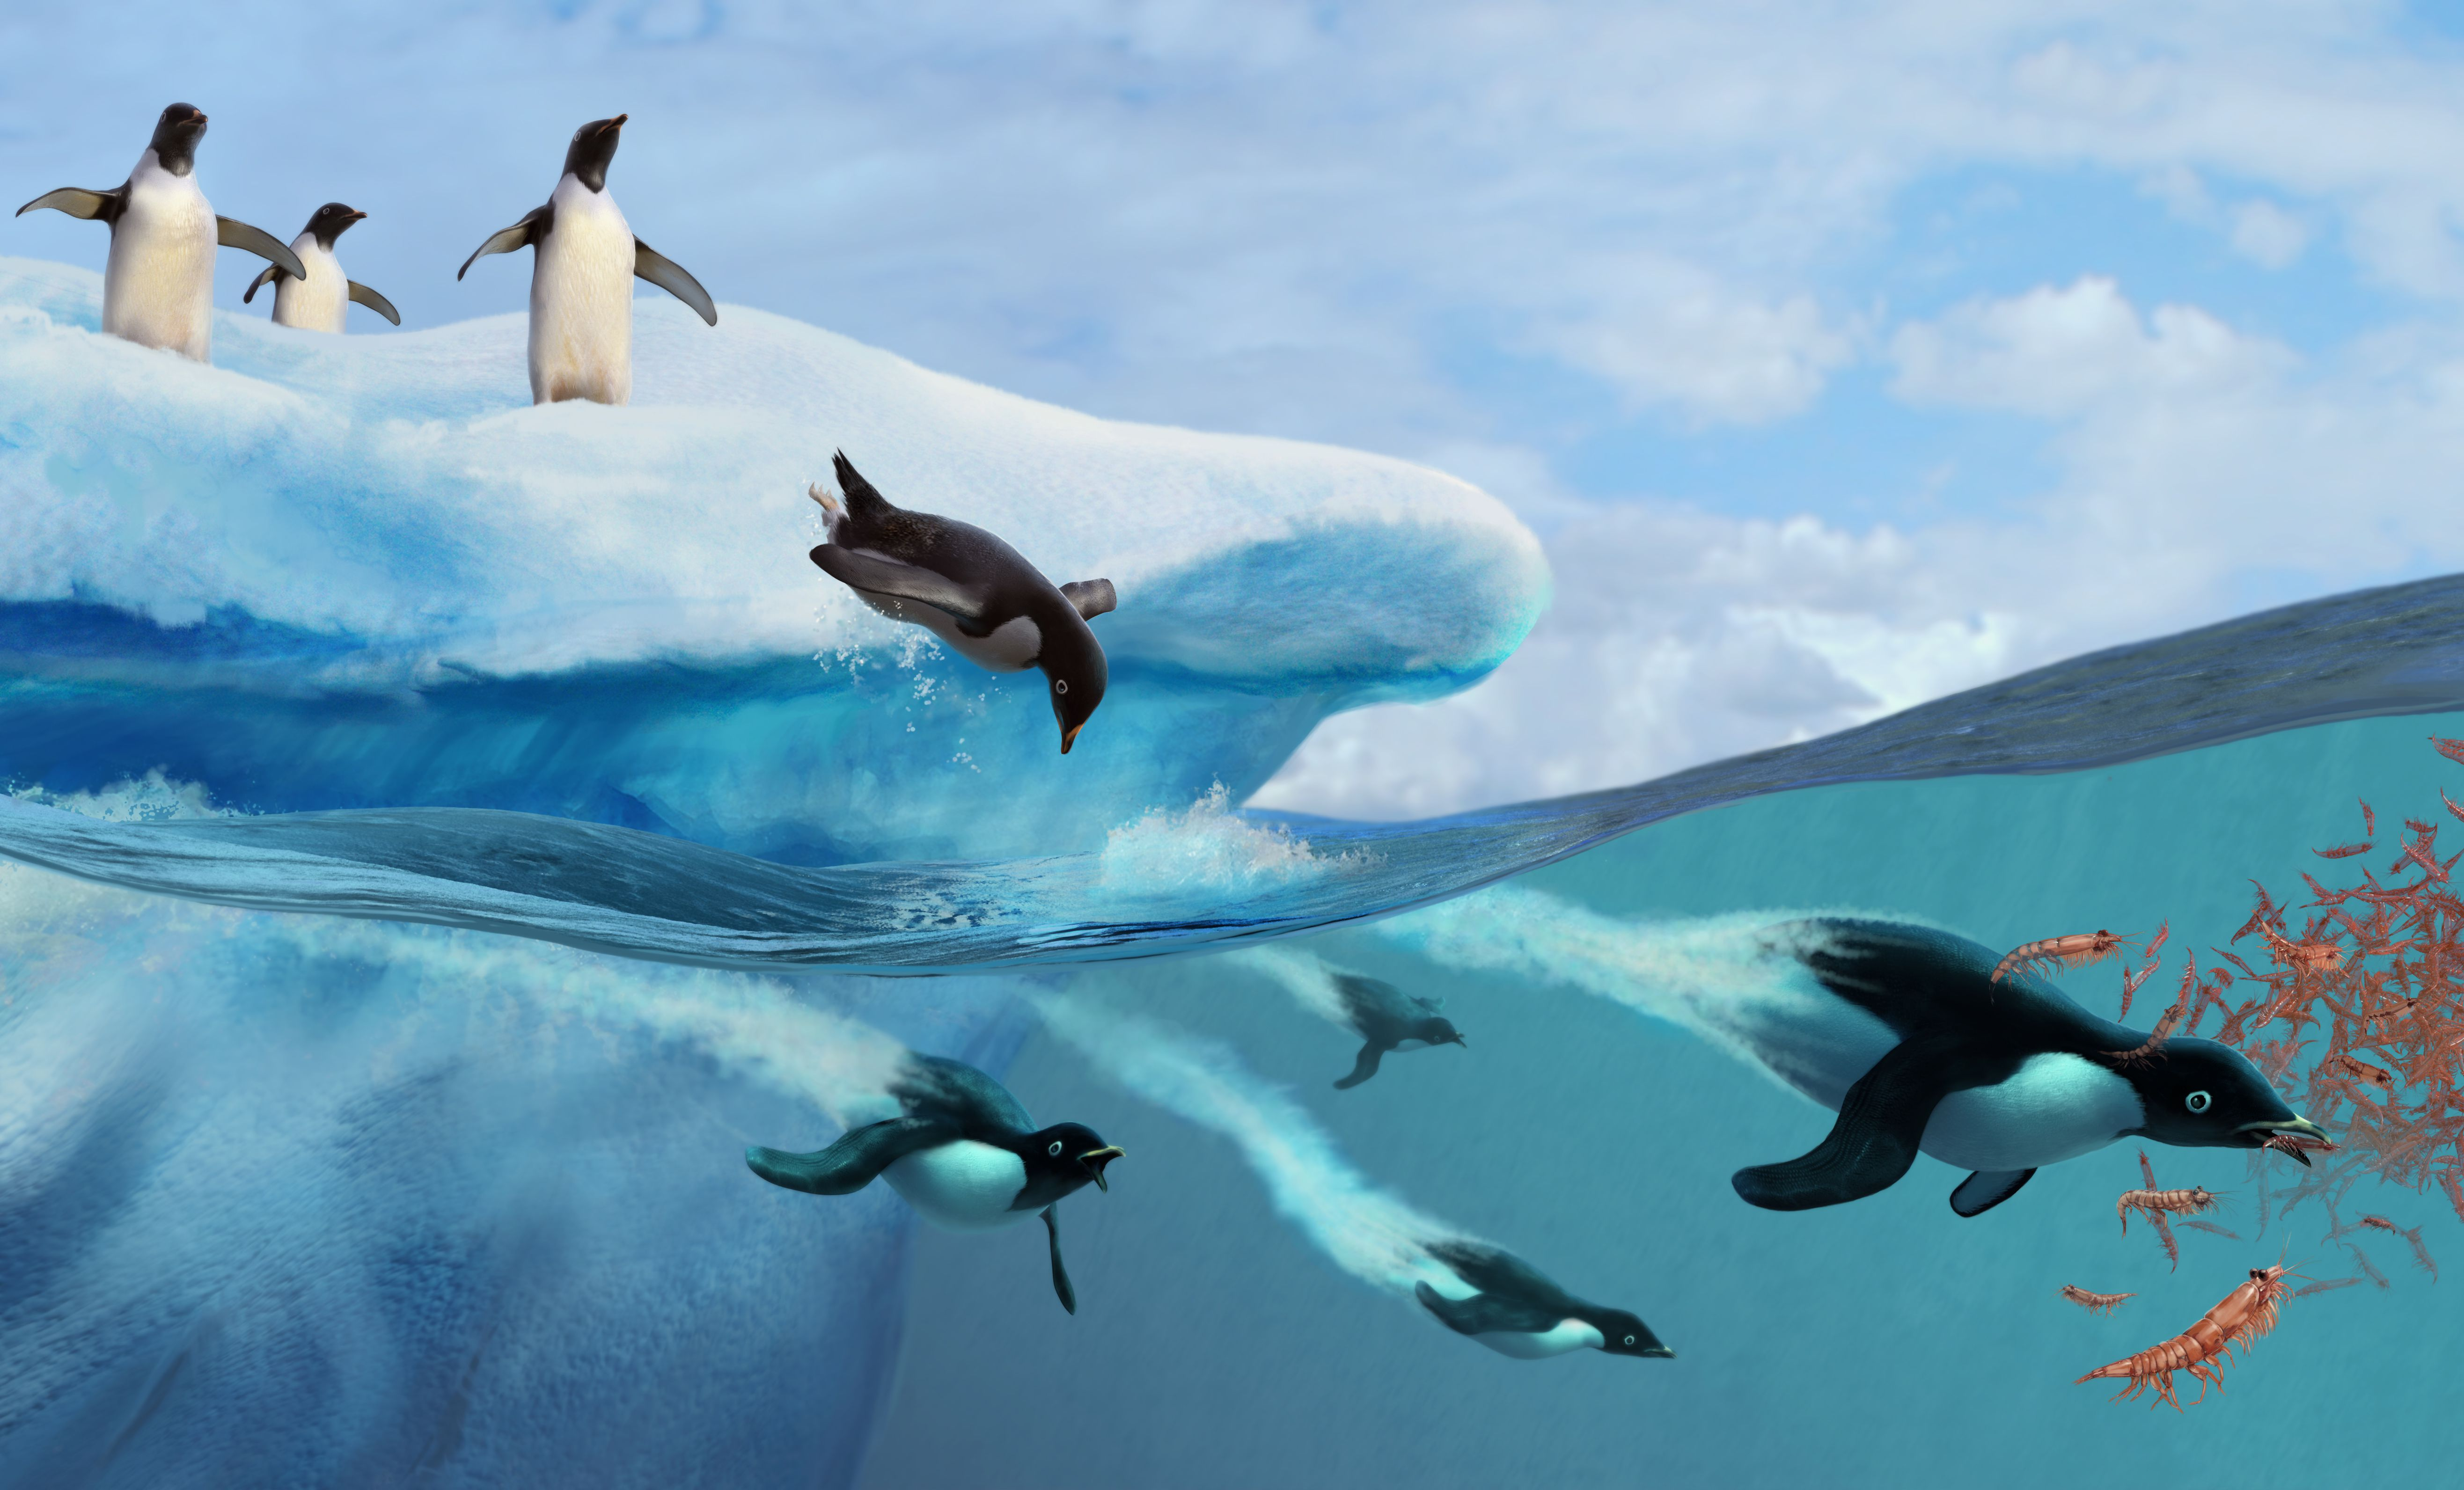 Digital Illustration Of Arctic Penguins On Ice And Diving Underwater For Krill F Bd B F D F F moreover Px D D B D D Bb D Be D Bd D Be D B D B D B D D B D Ba D Be D Be D B D D B D B D Bd D B D B D D B D B D Bd D B D D B D B D B D Be D B moreover Copepod Zooplankton together with Dscf together with Frog Pond Jupiter. on zooplankton food chain